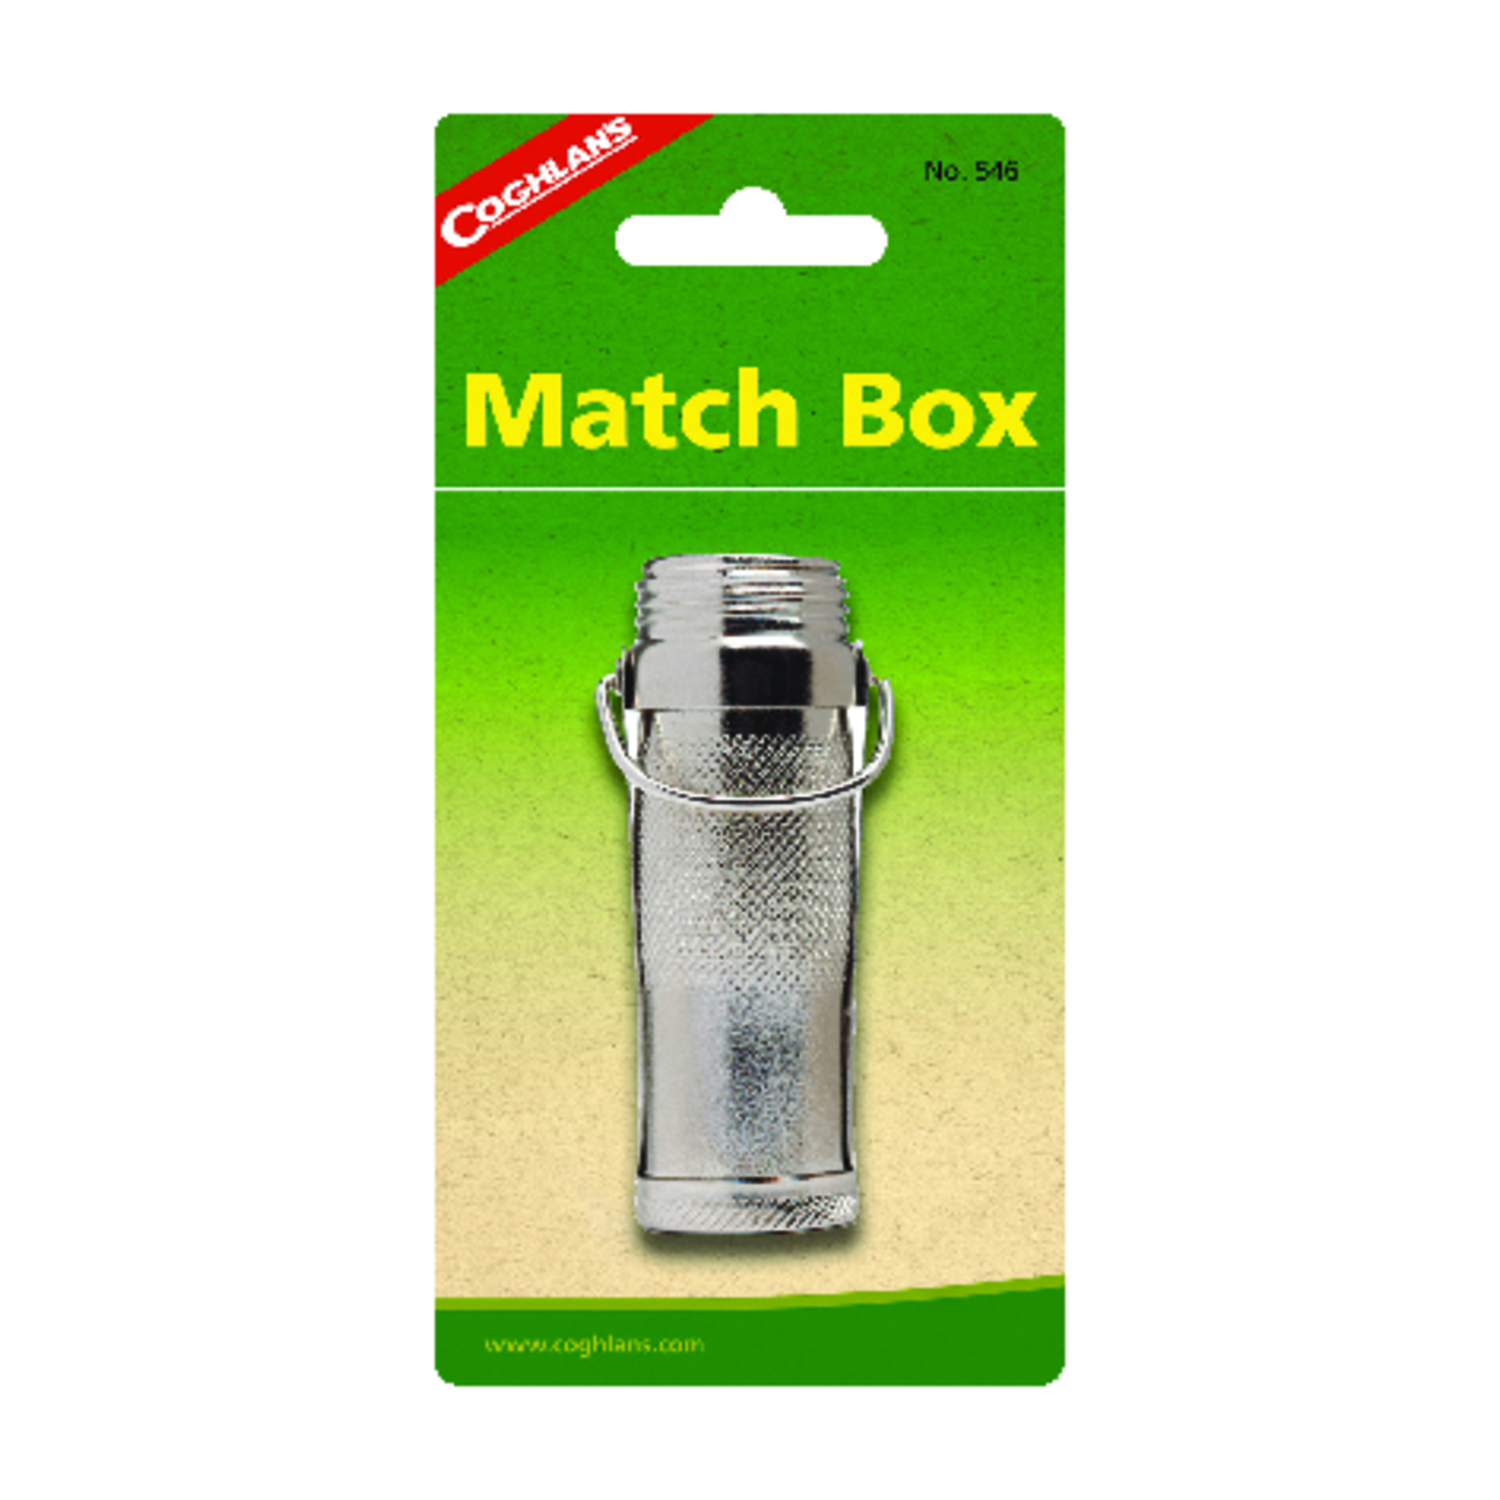 Coghlan's  Match Box  6.000 in. H x 3.000 in. W x 0.750 in. L 1 pk